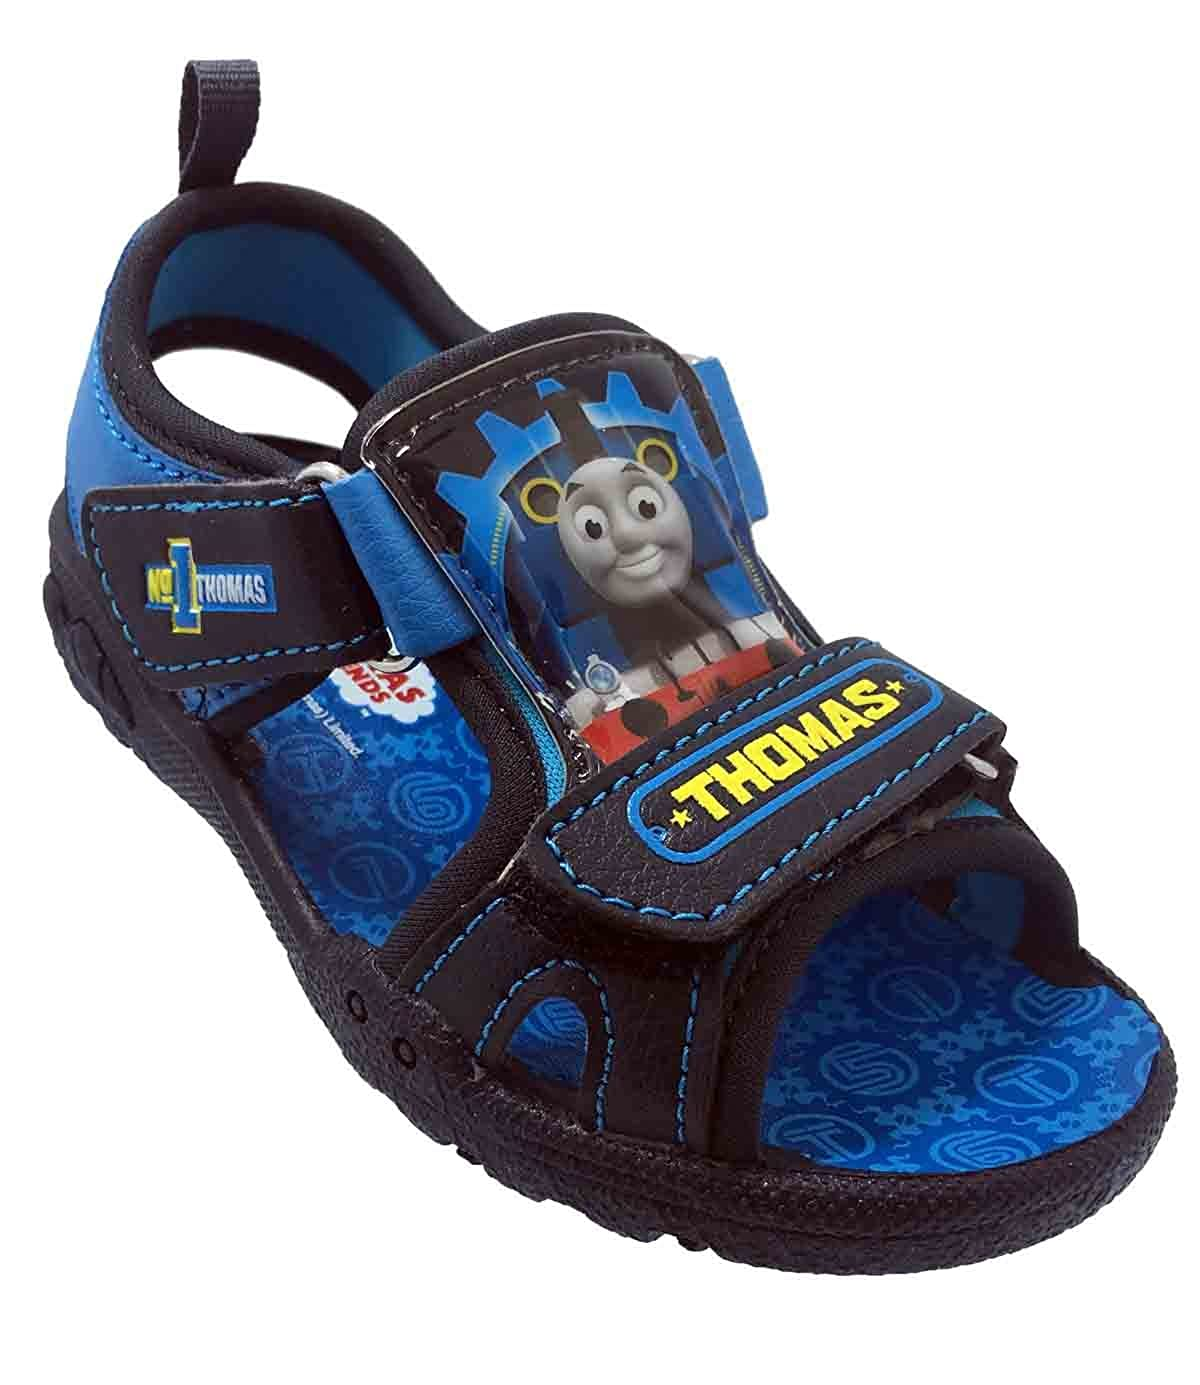 e8e0a4ee5ae23 Toddler Boys Thomas The Train Sport Sandals